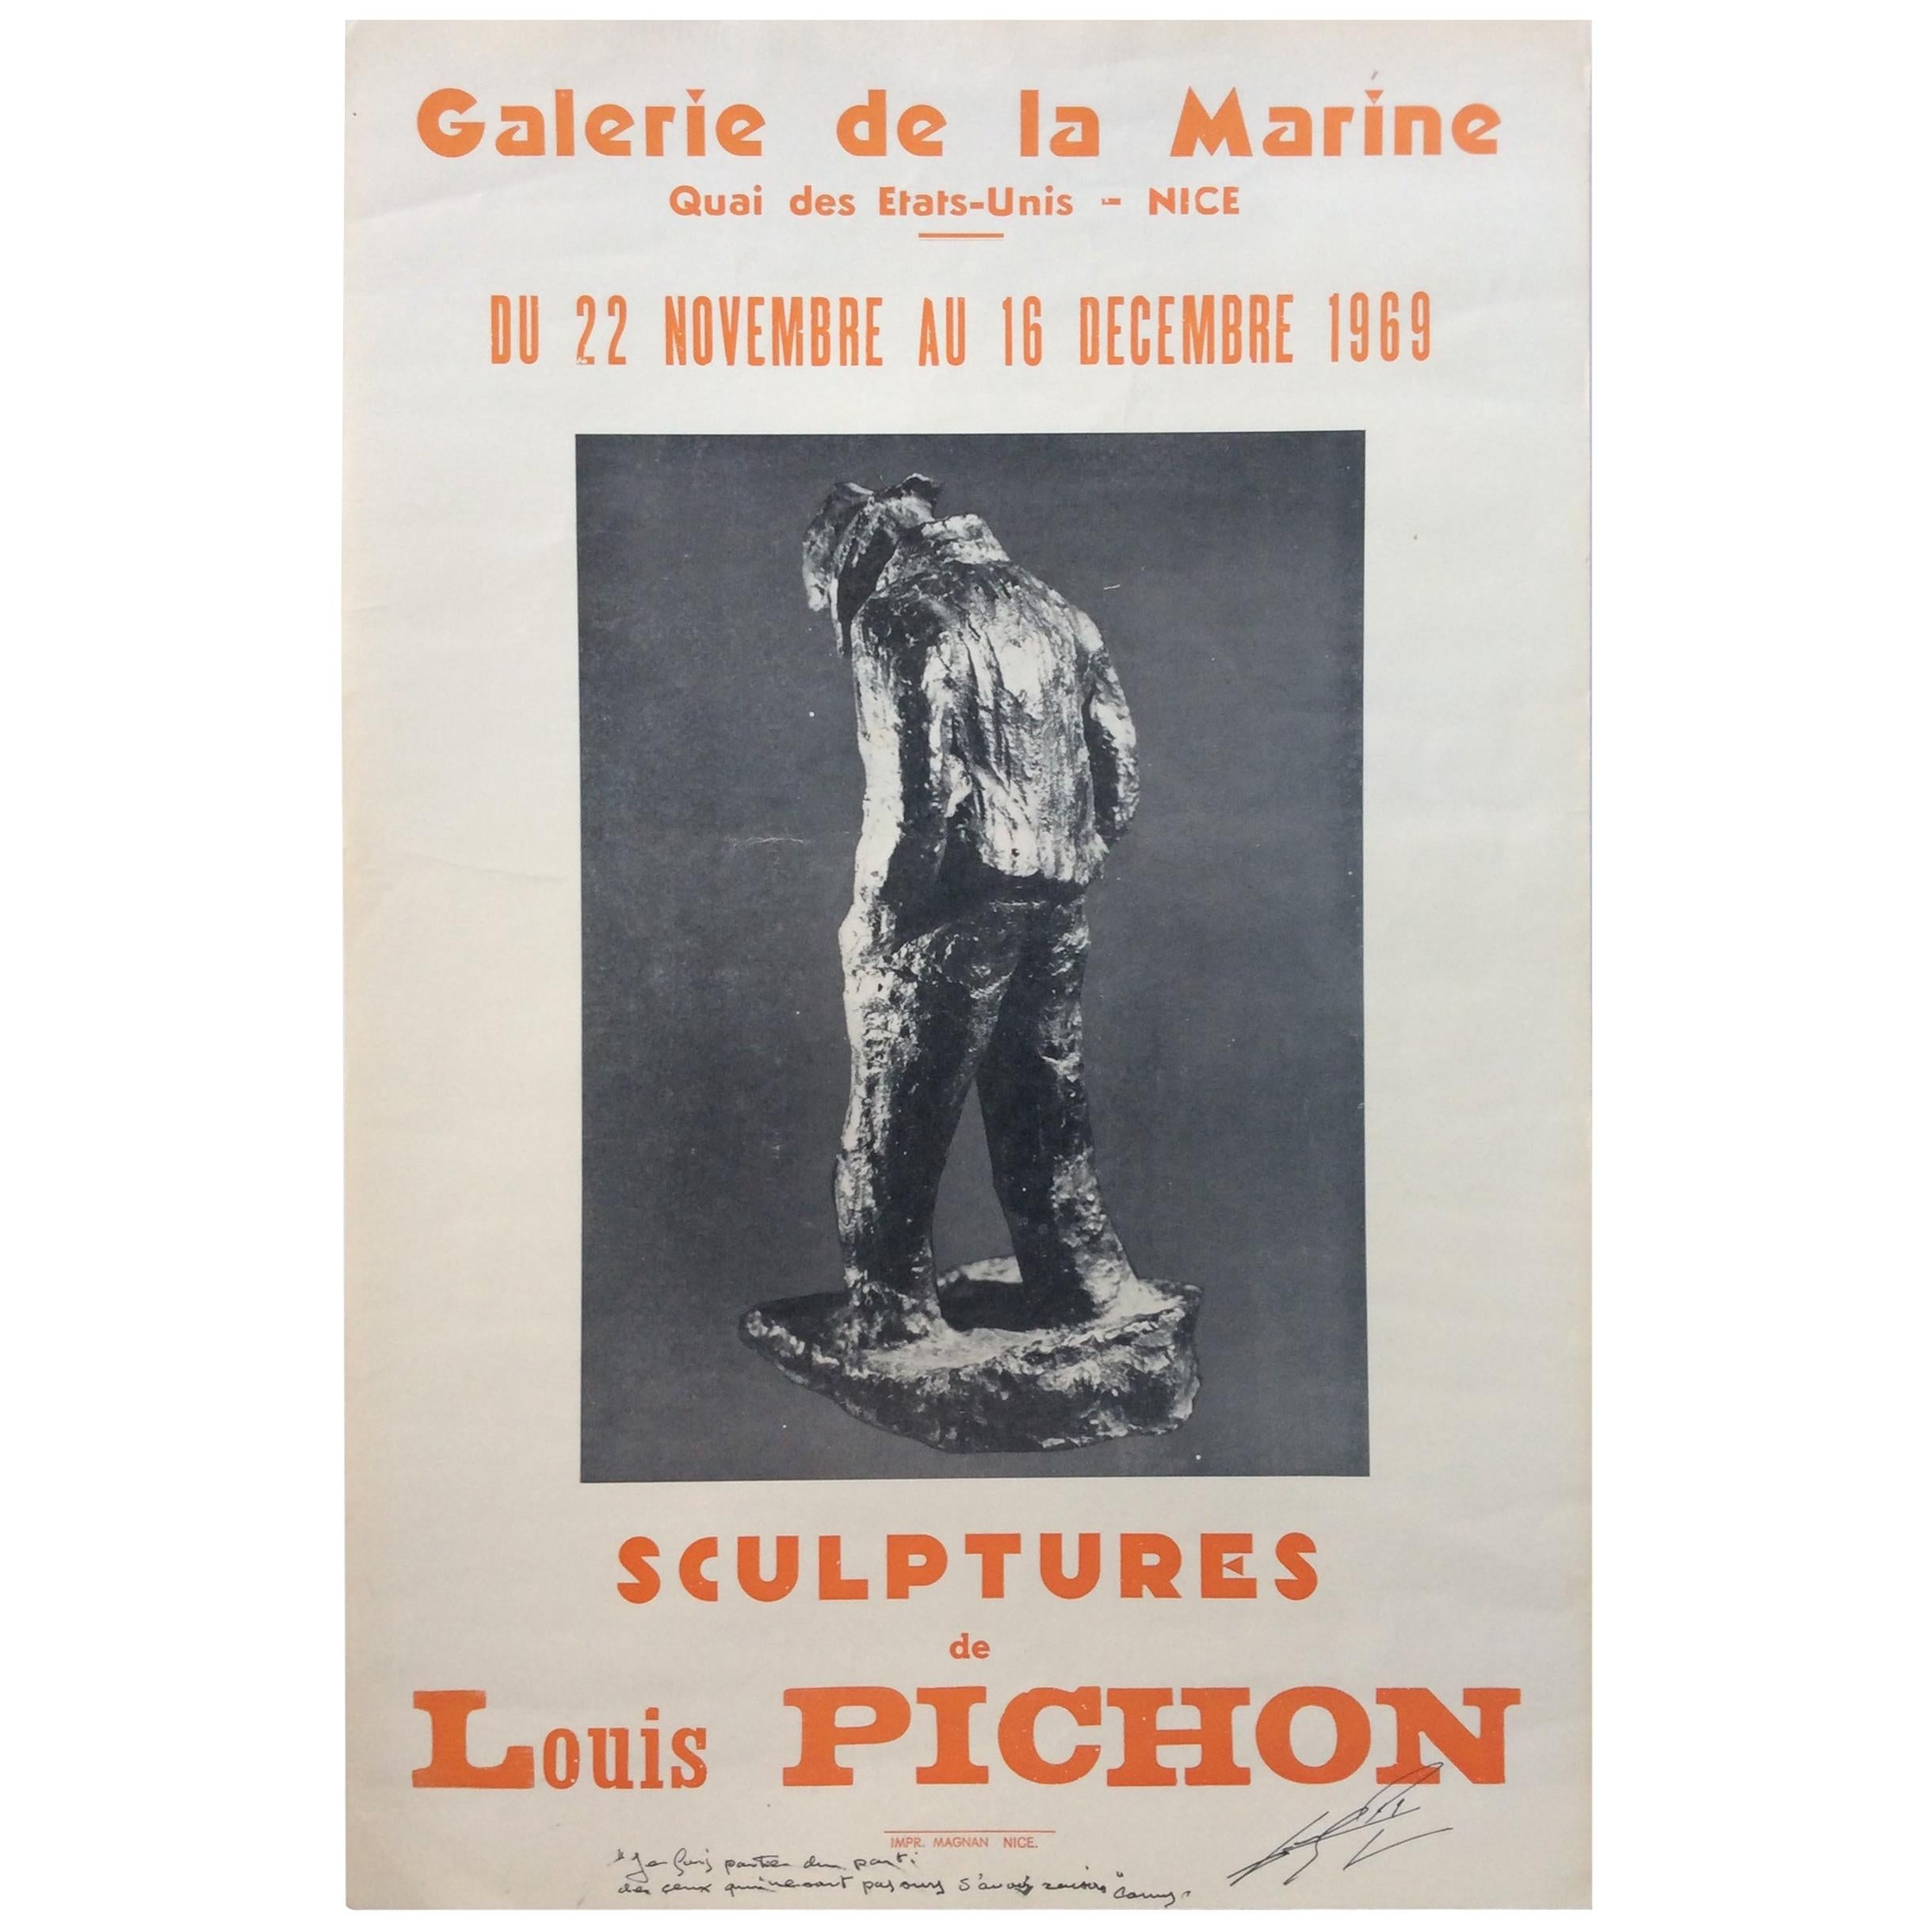 Midcentury Art Exhibition Poster Signed by the Artist Louis Pichon, 1969